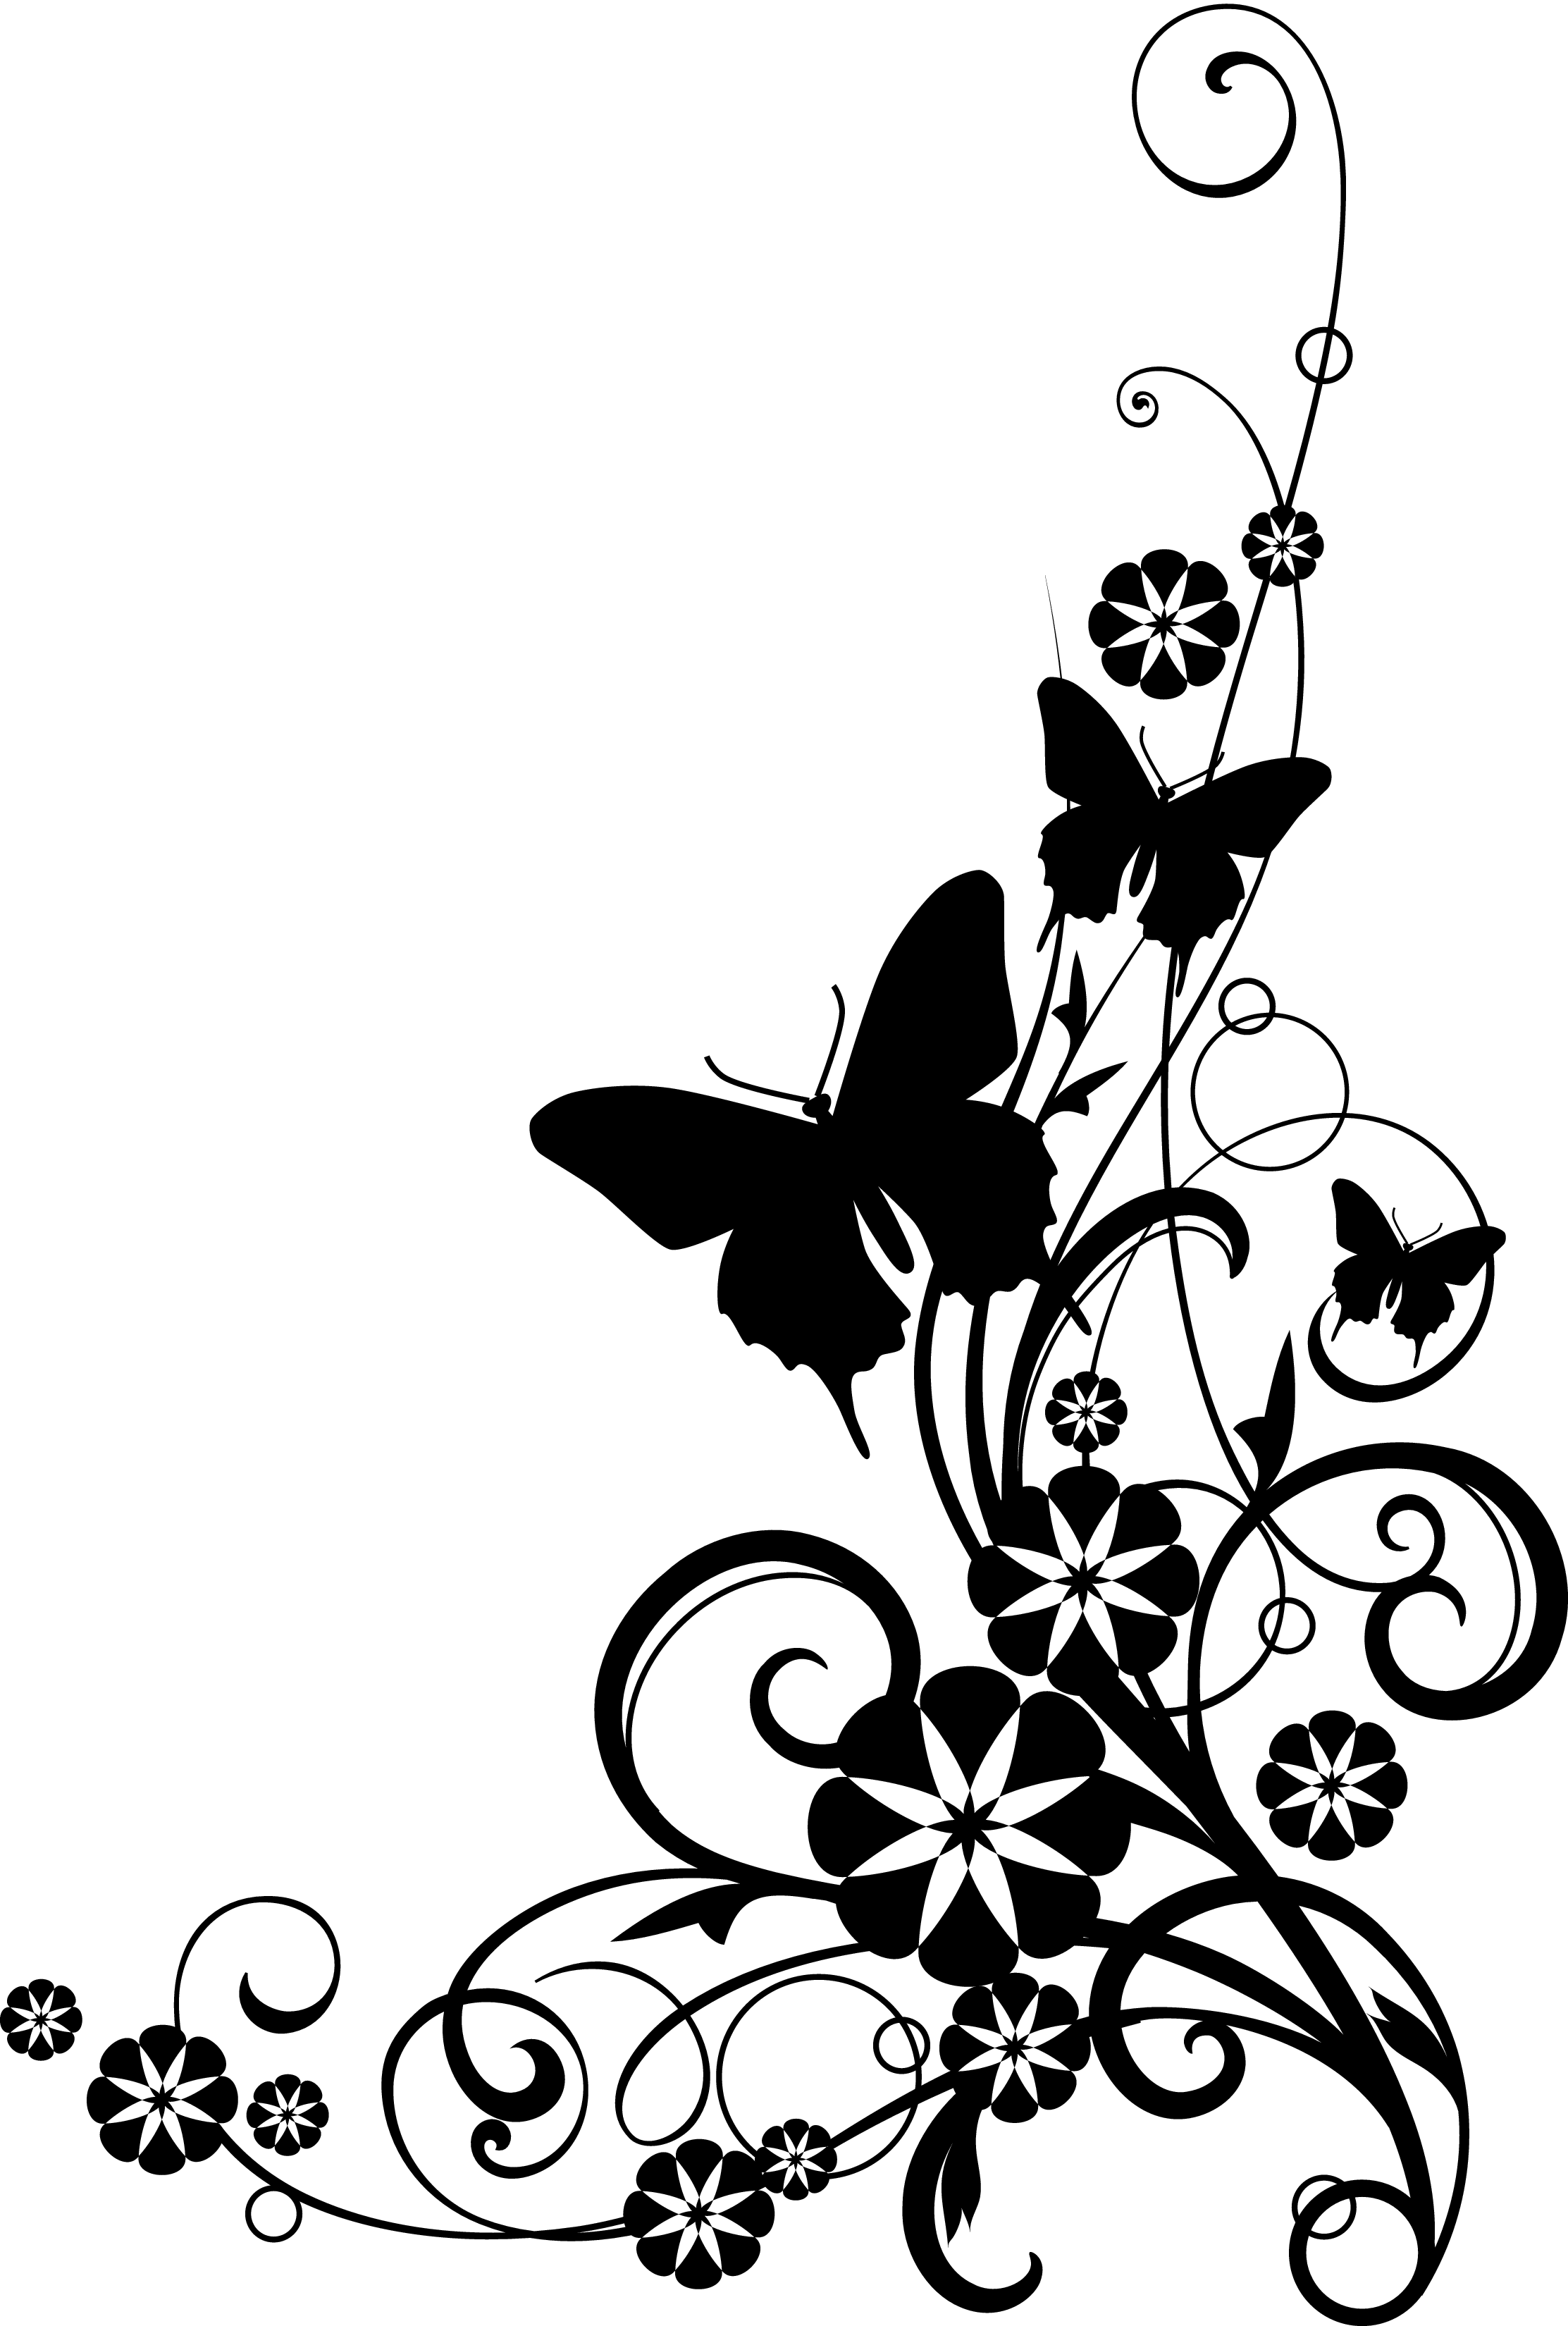 Vine clipart black and white clipart panda free clipart images home20clipart20black20and20white mightylinksfo